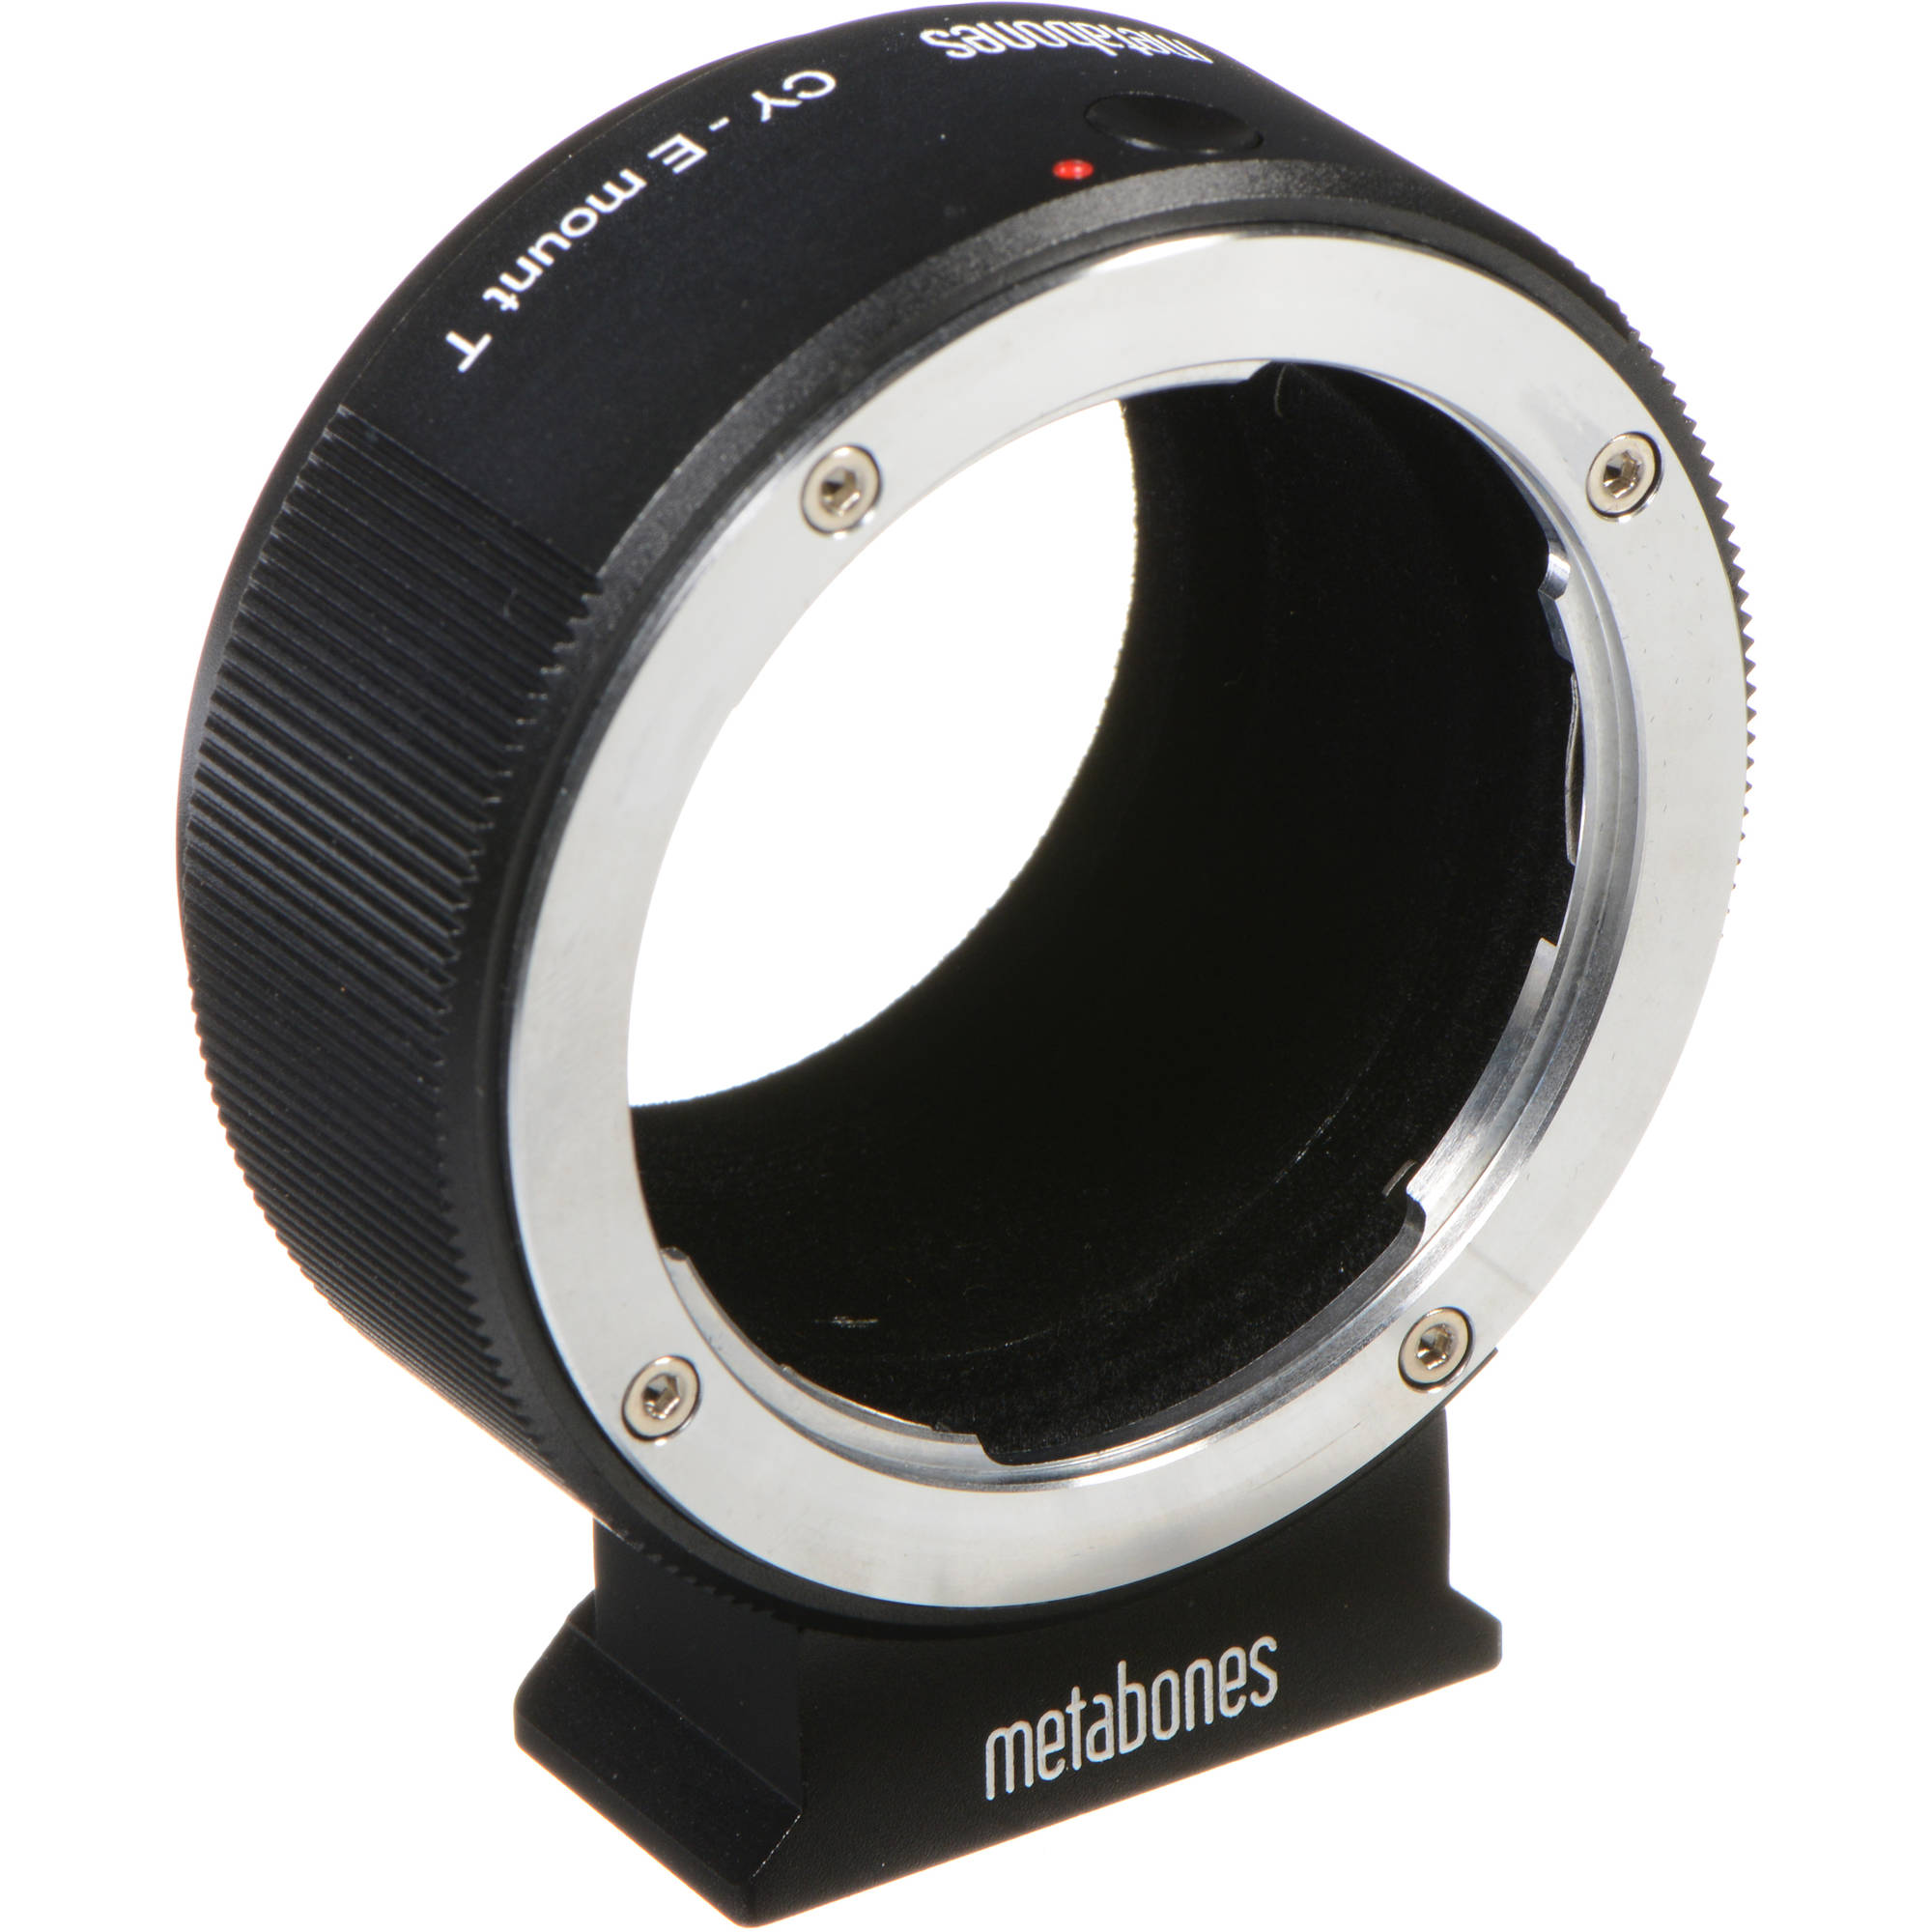 Metabones Nikon F Lens to Micro Four Thirds Camera T Adapter II (Black)